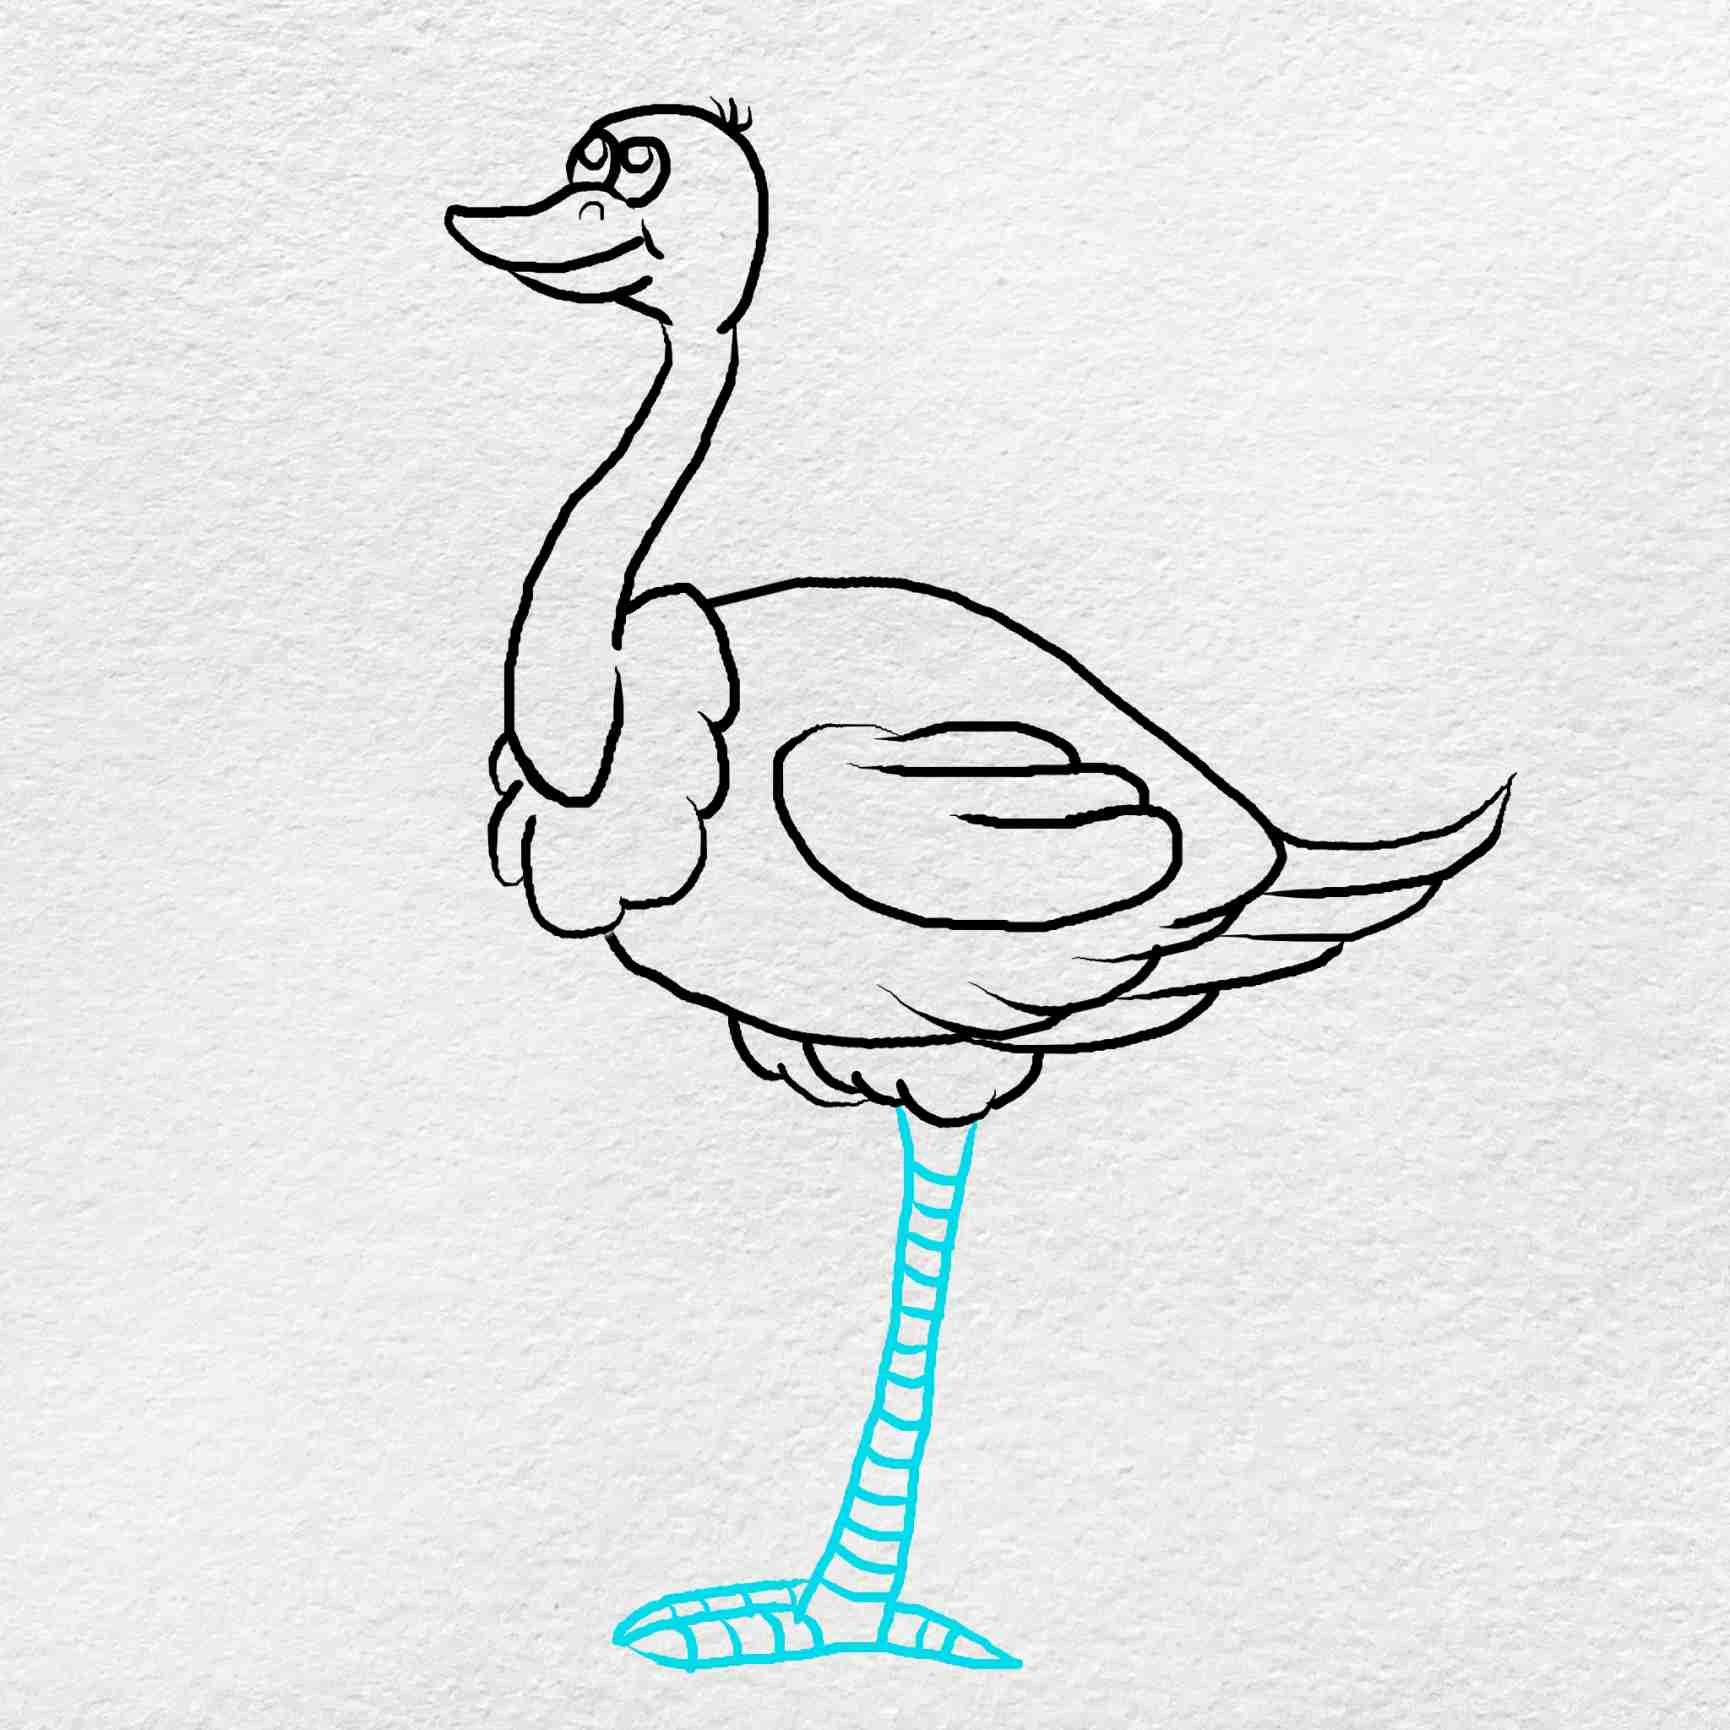 How To Draw An Ostrich: Step 7